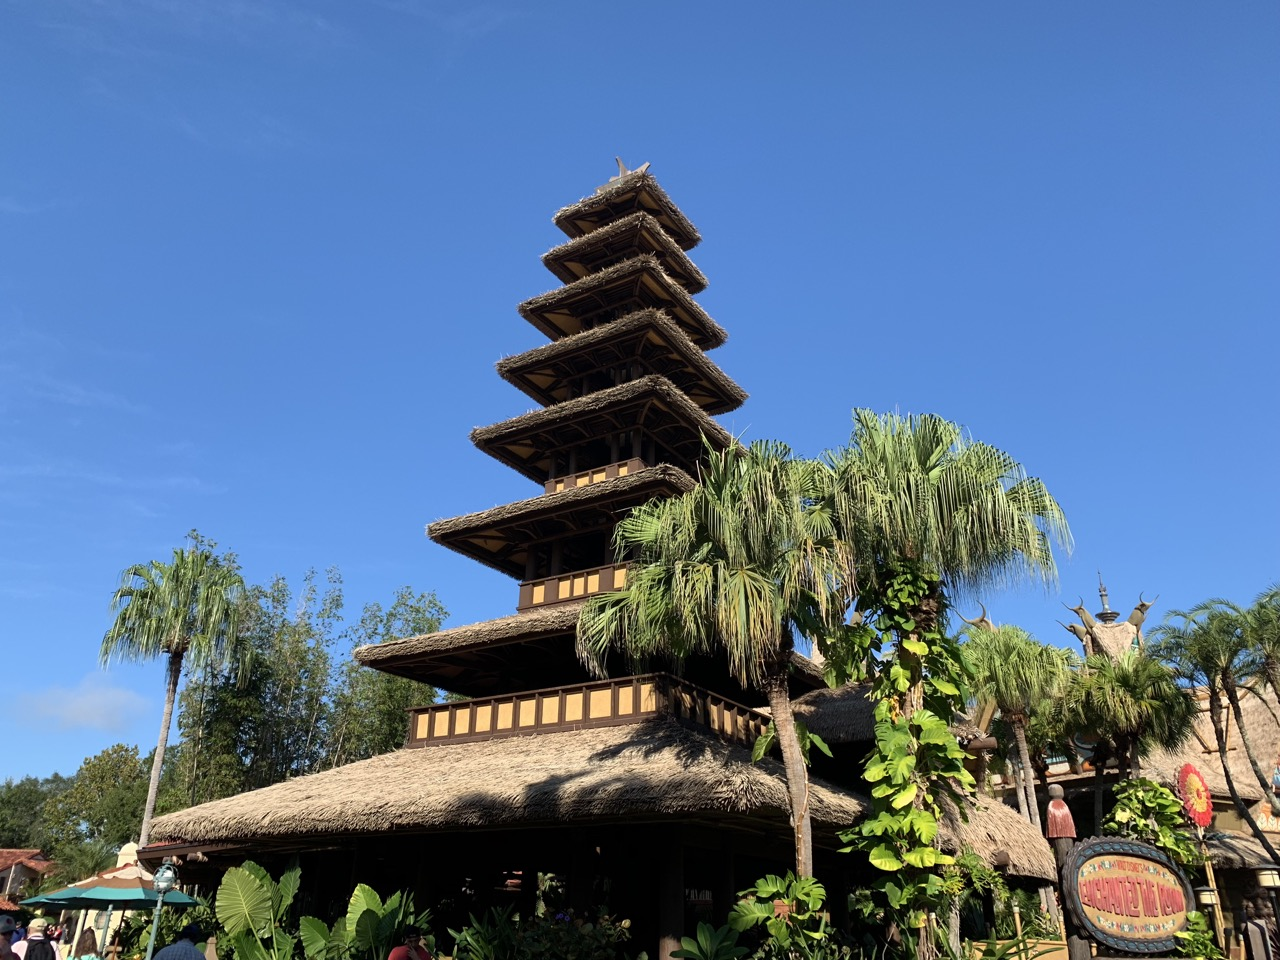 magic kingdom rides 30 tiki room.jpeg